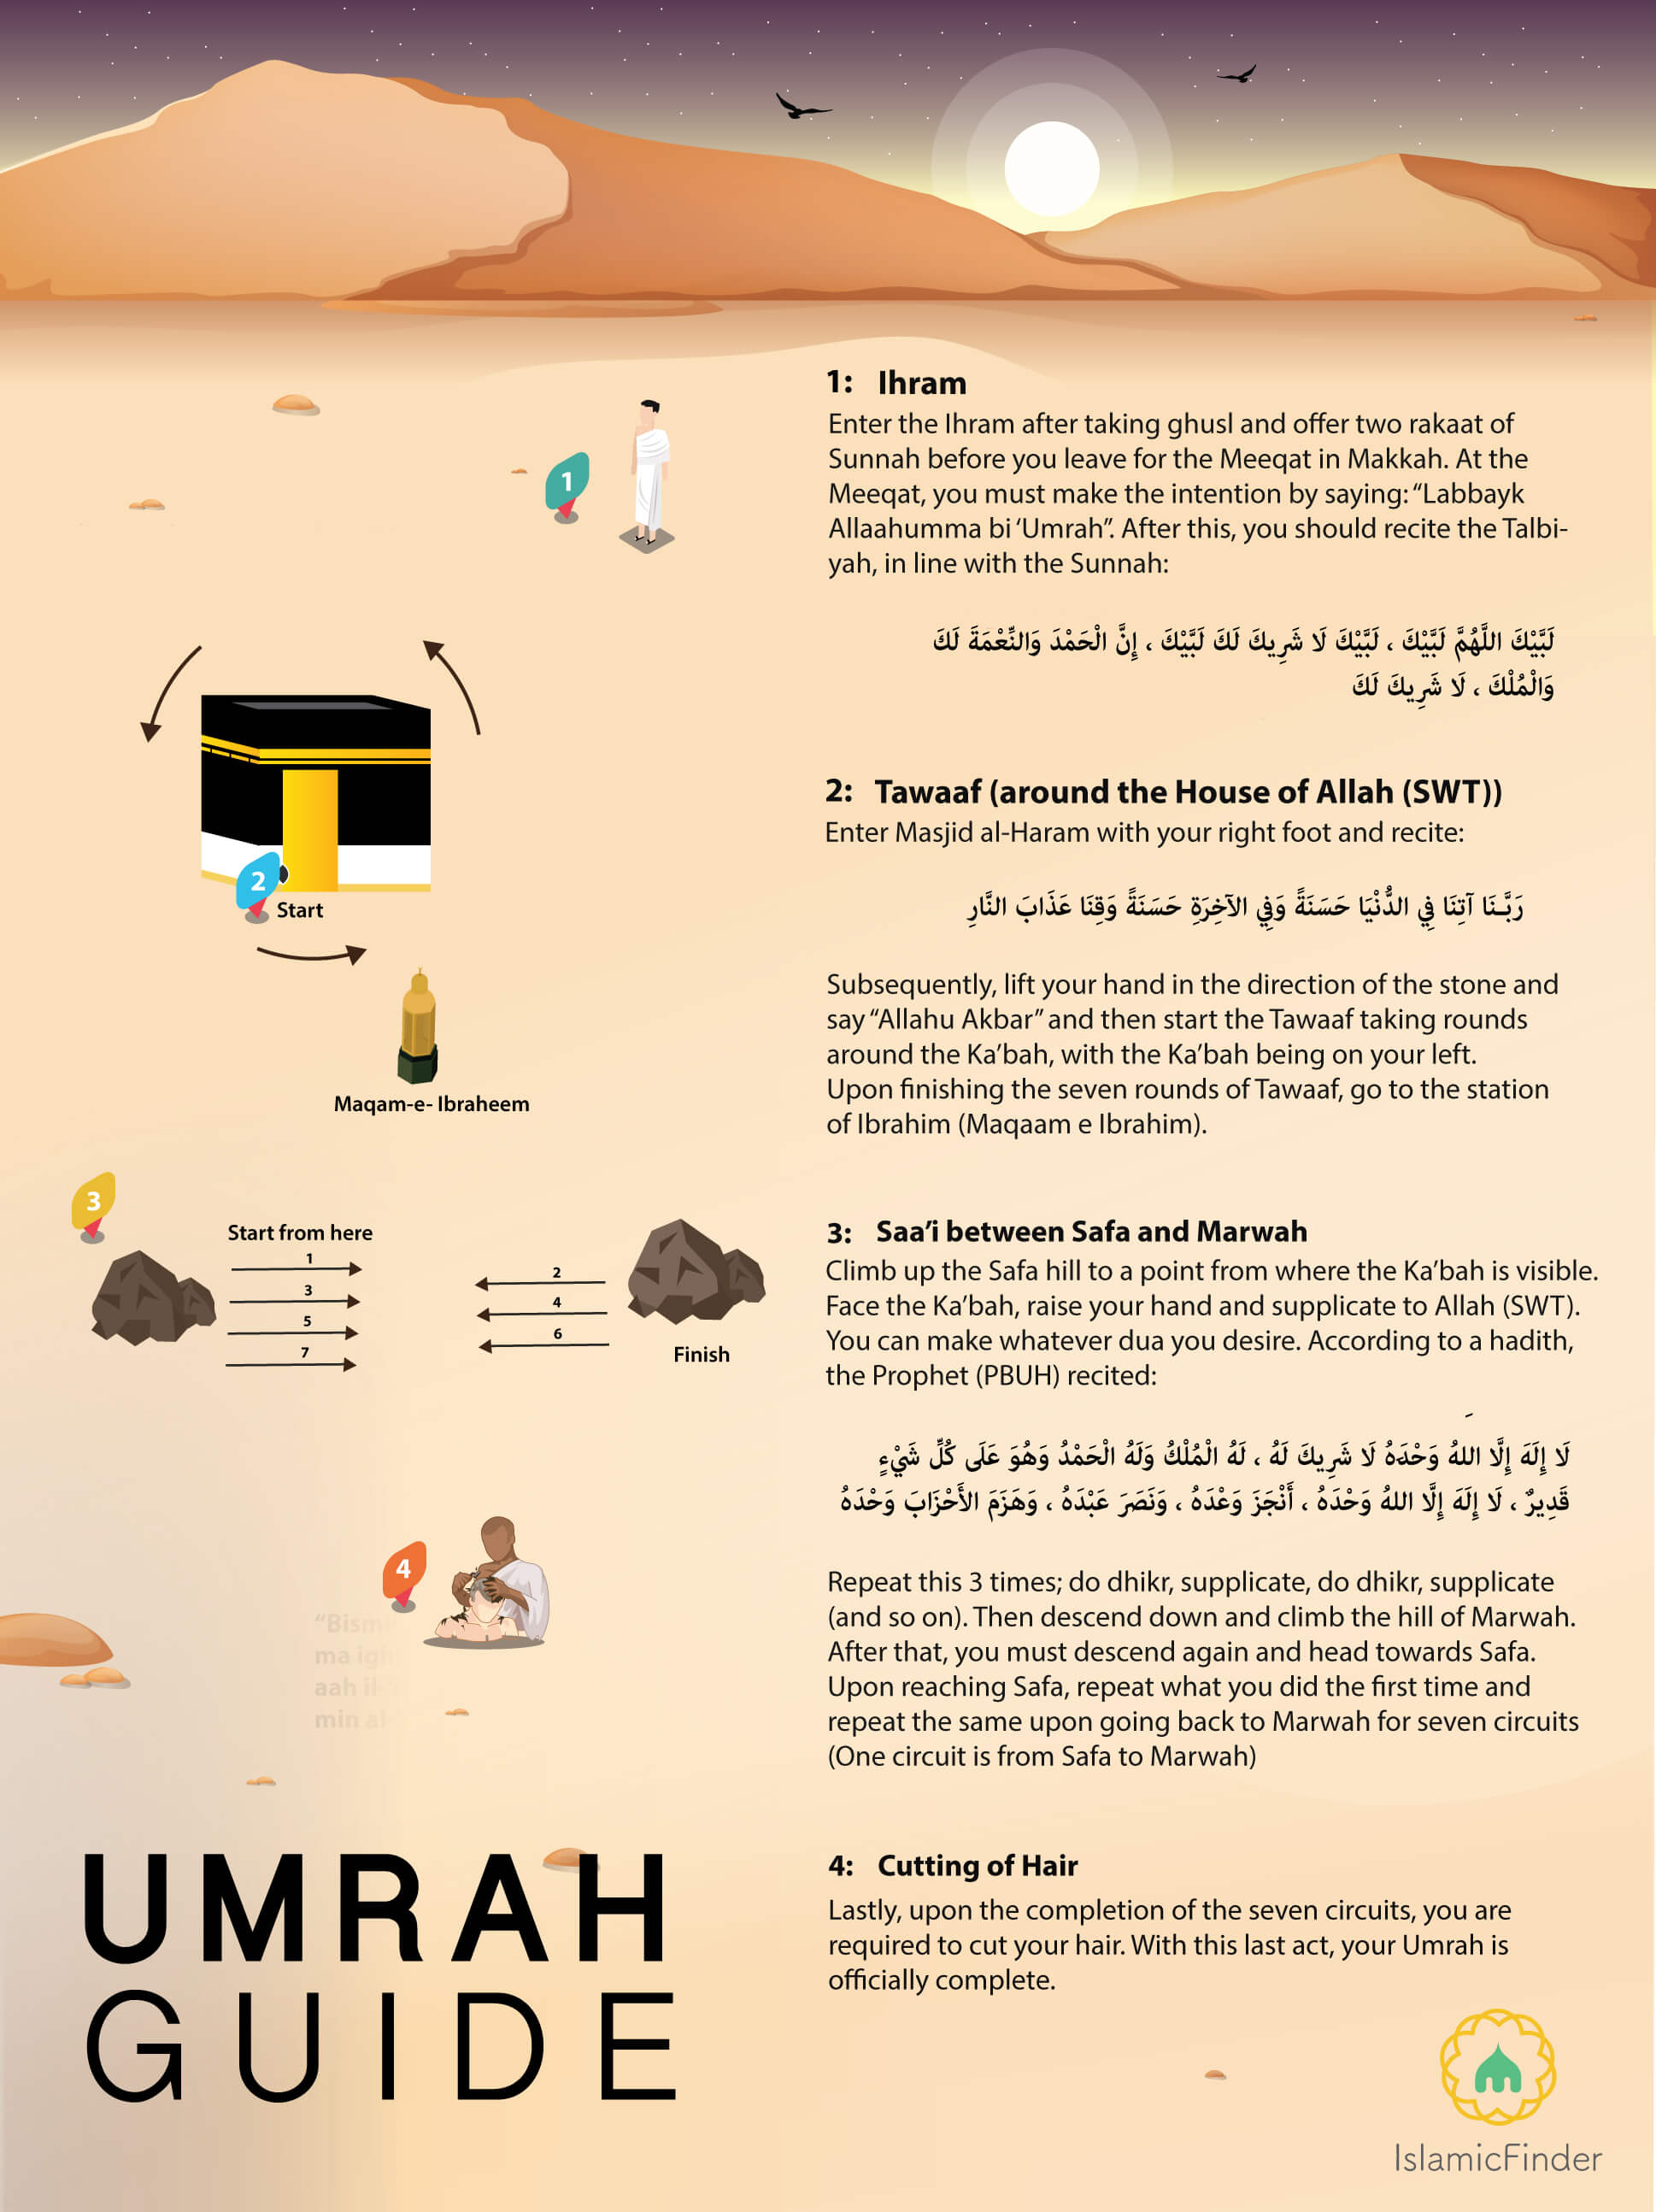 Umrah Guide How To Perform This Muslim Pilgrimage